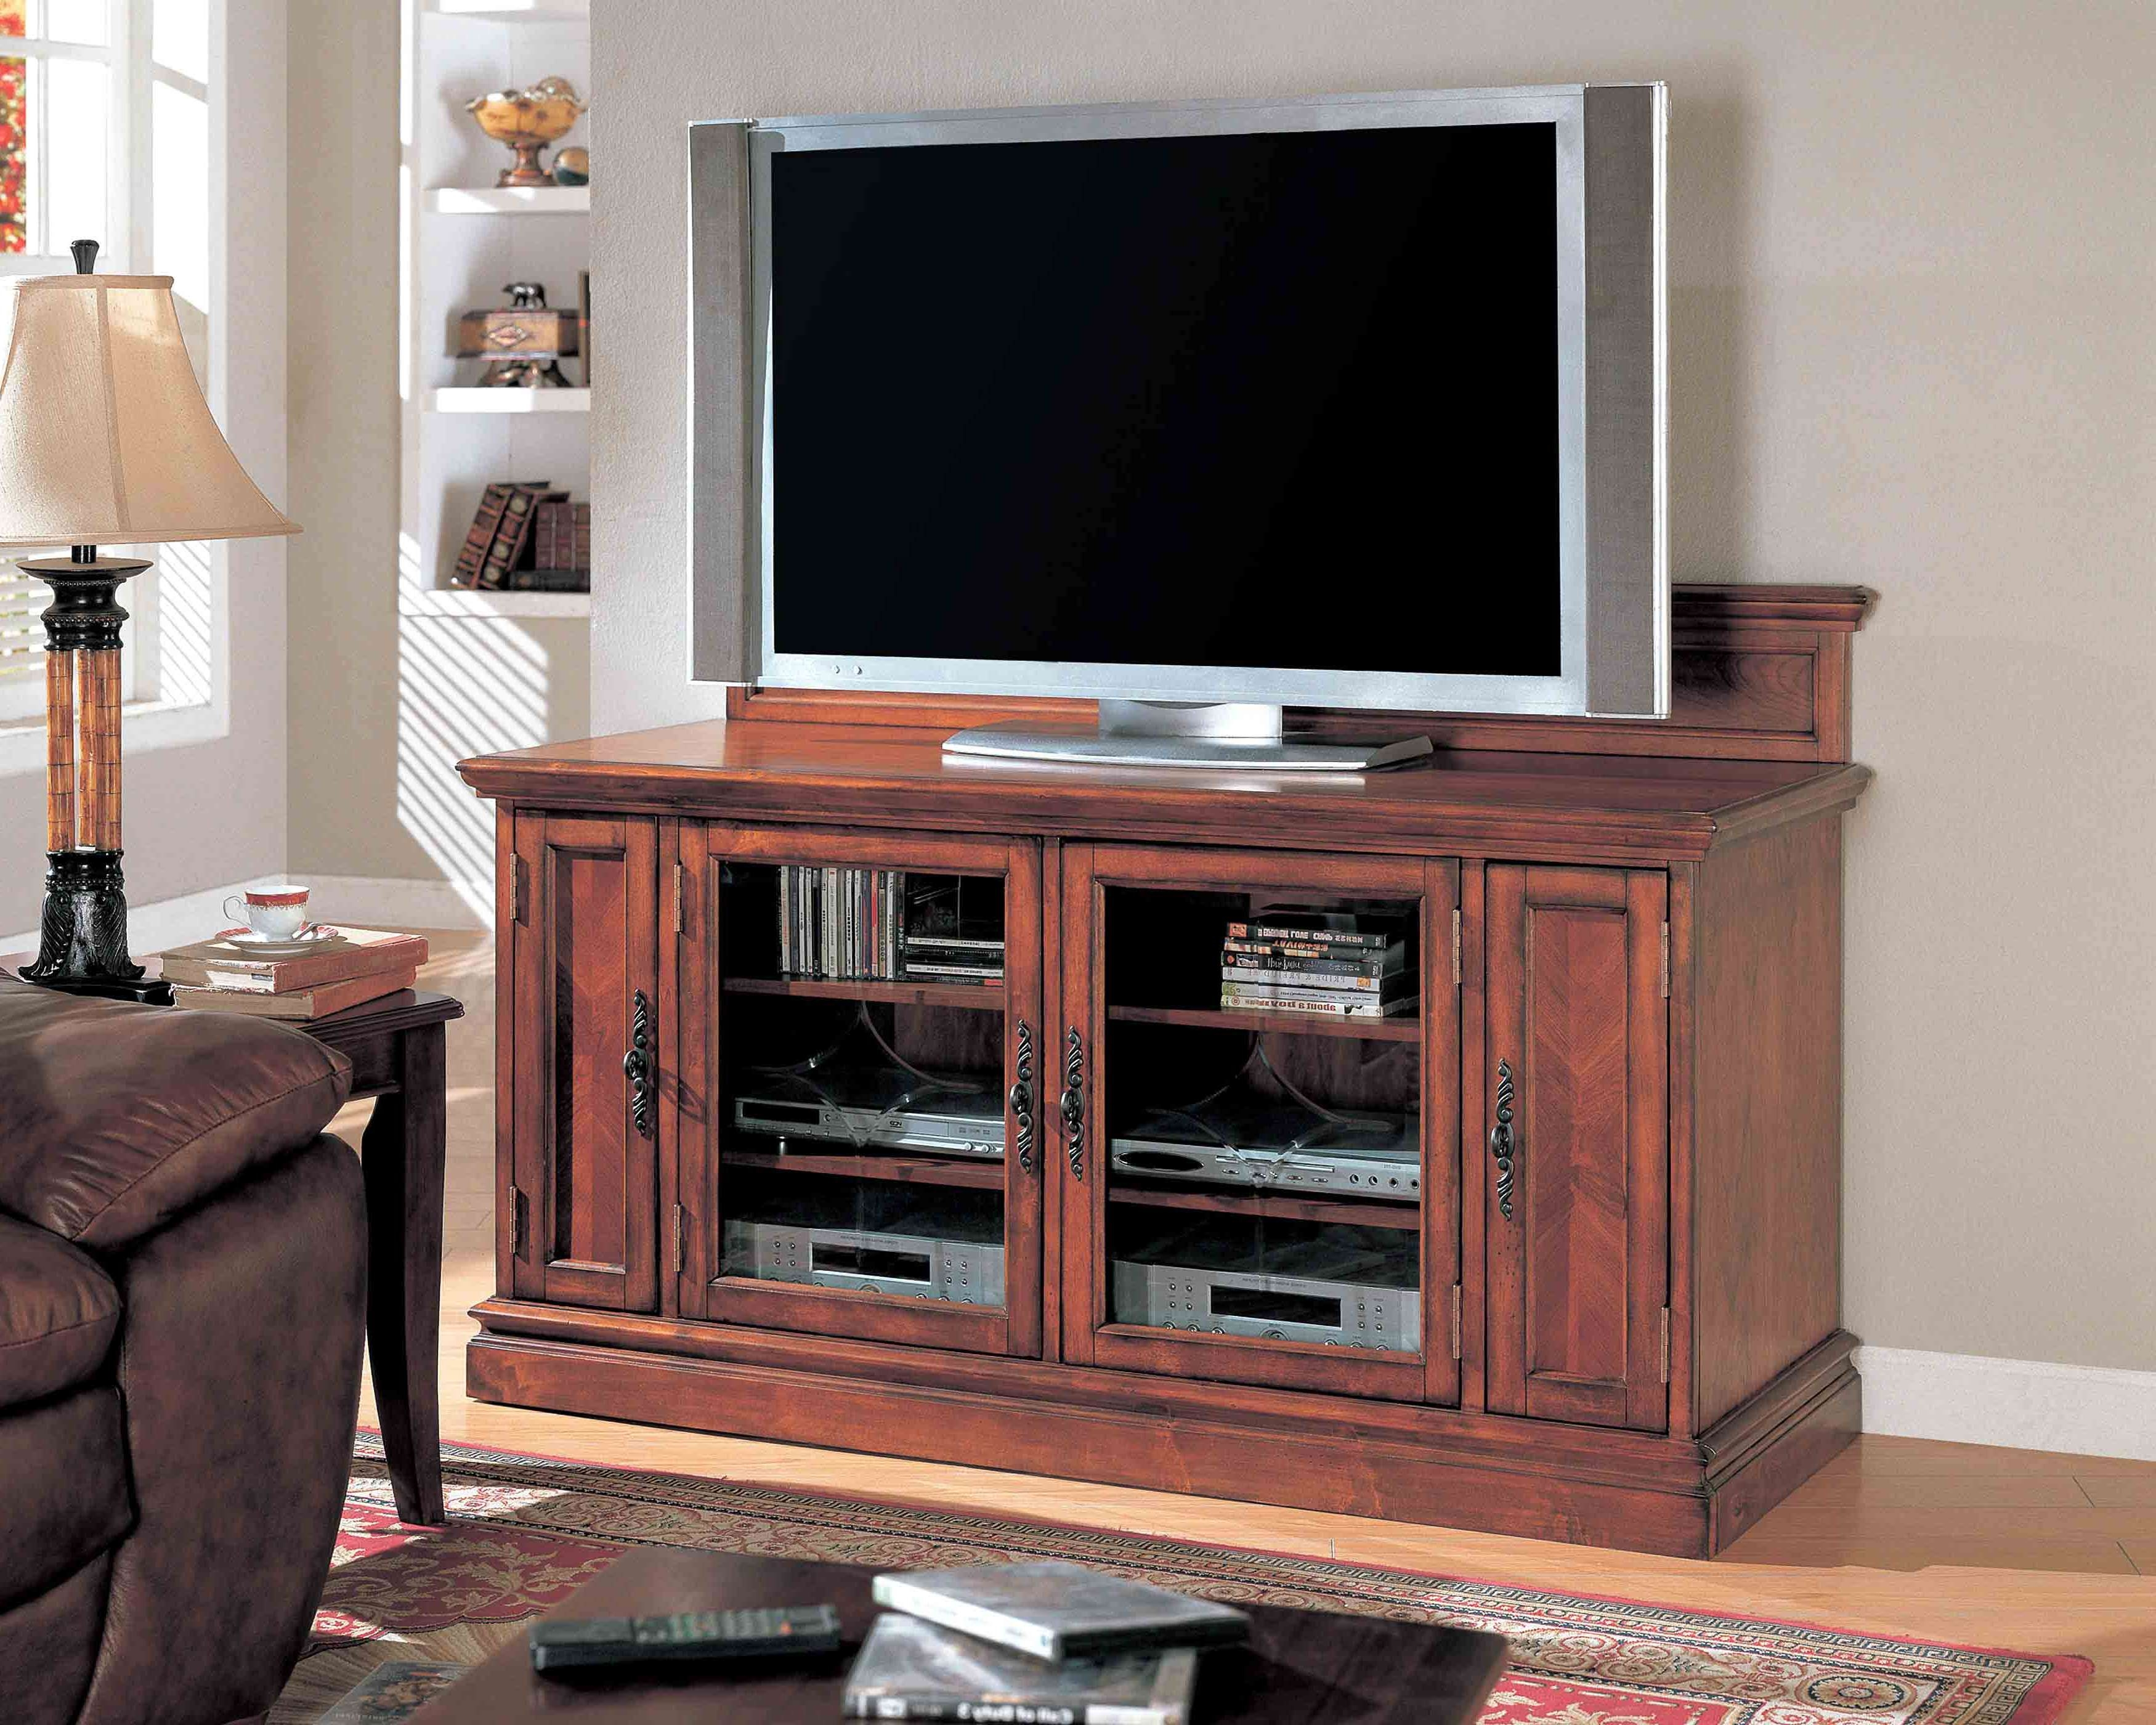 Dark Brown Wooden Tv Cabinet With Glass Doors On The Floor Throughout Wooden Tv Cabinets With Glass Doors (View 6 of 20)